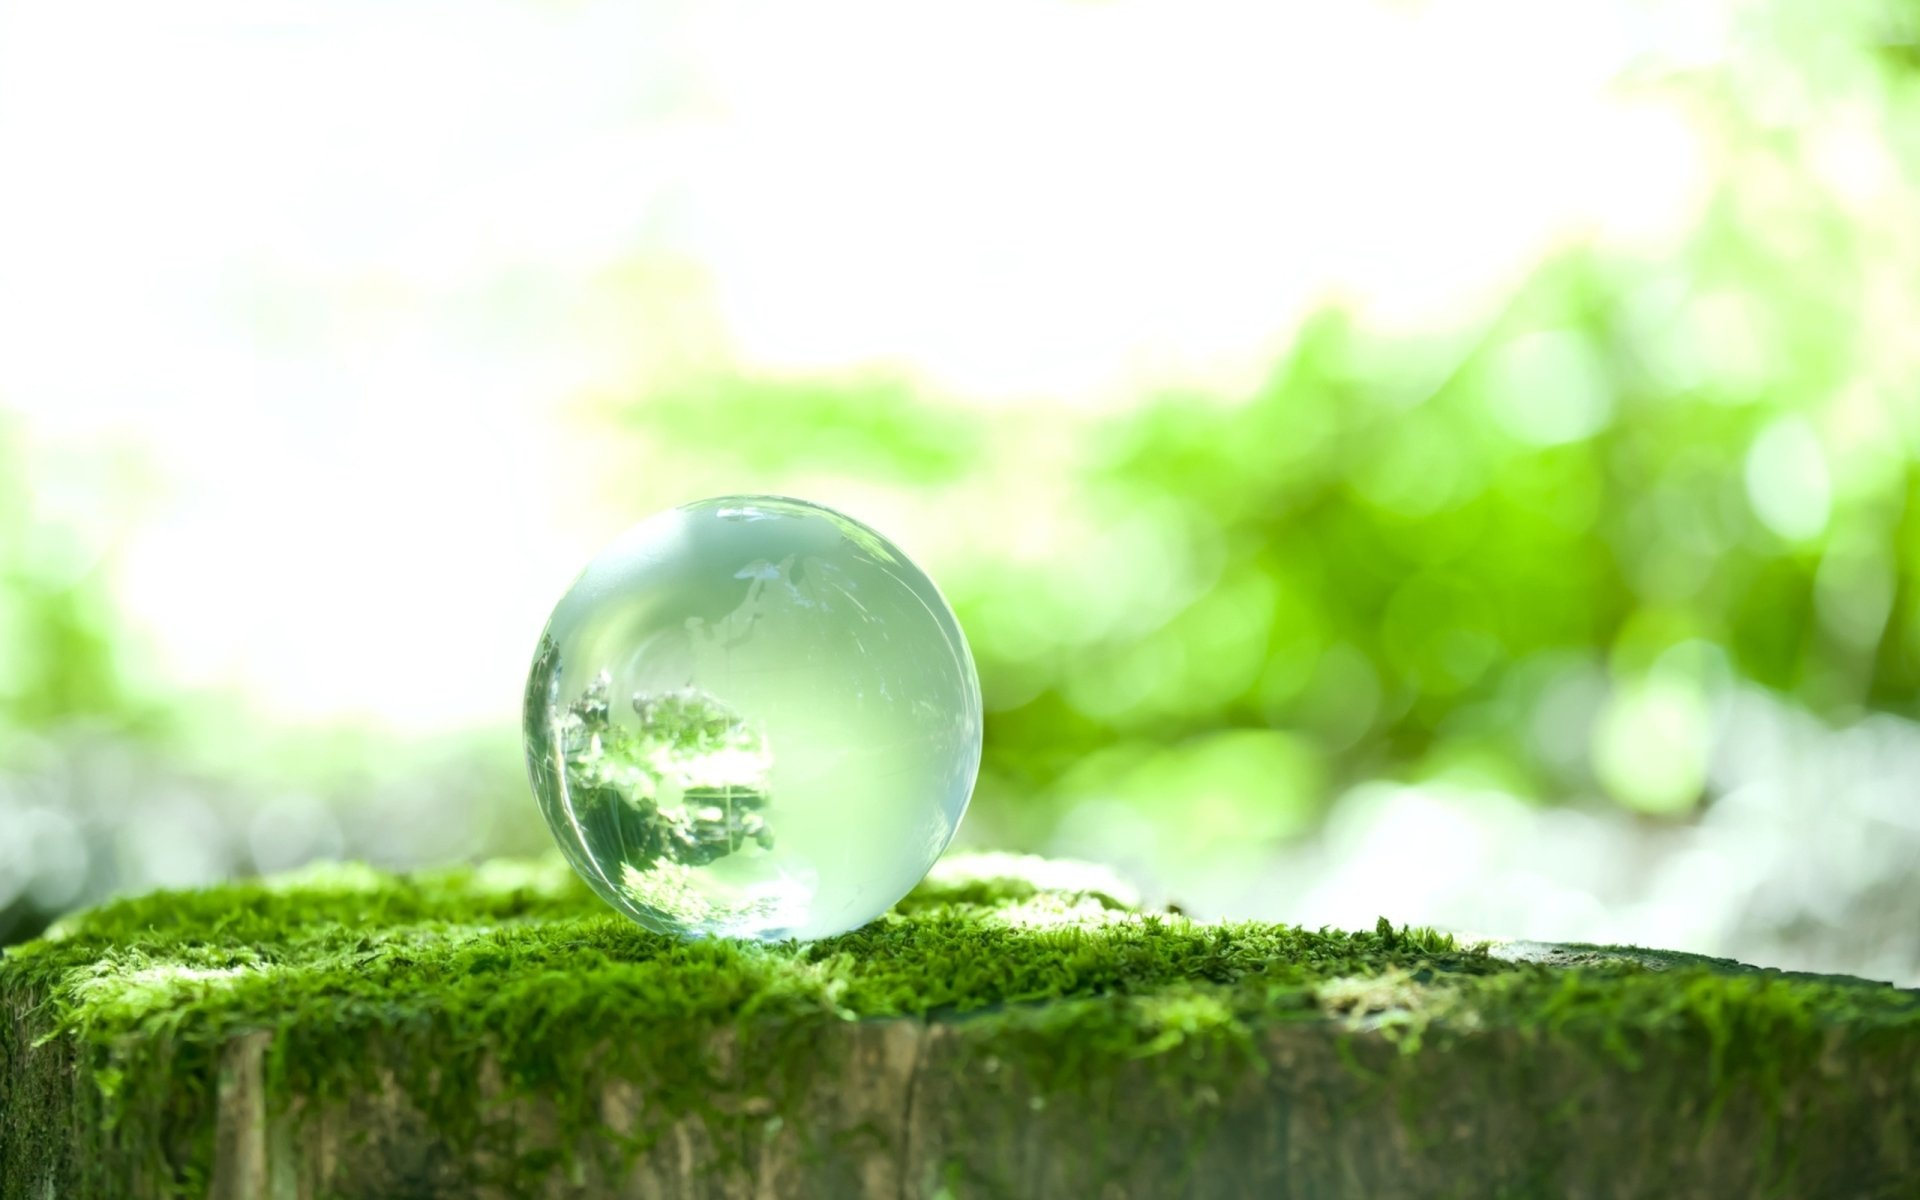 Earth - Spring  Season Green Orb Sphere Marble Moss Glass Wallpaper